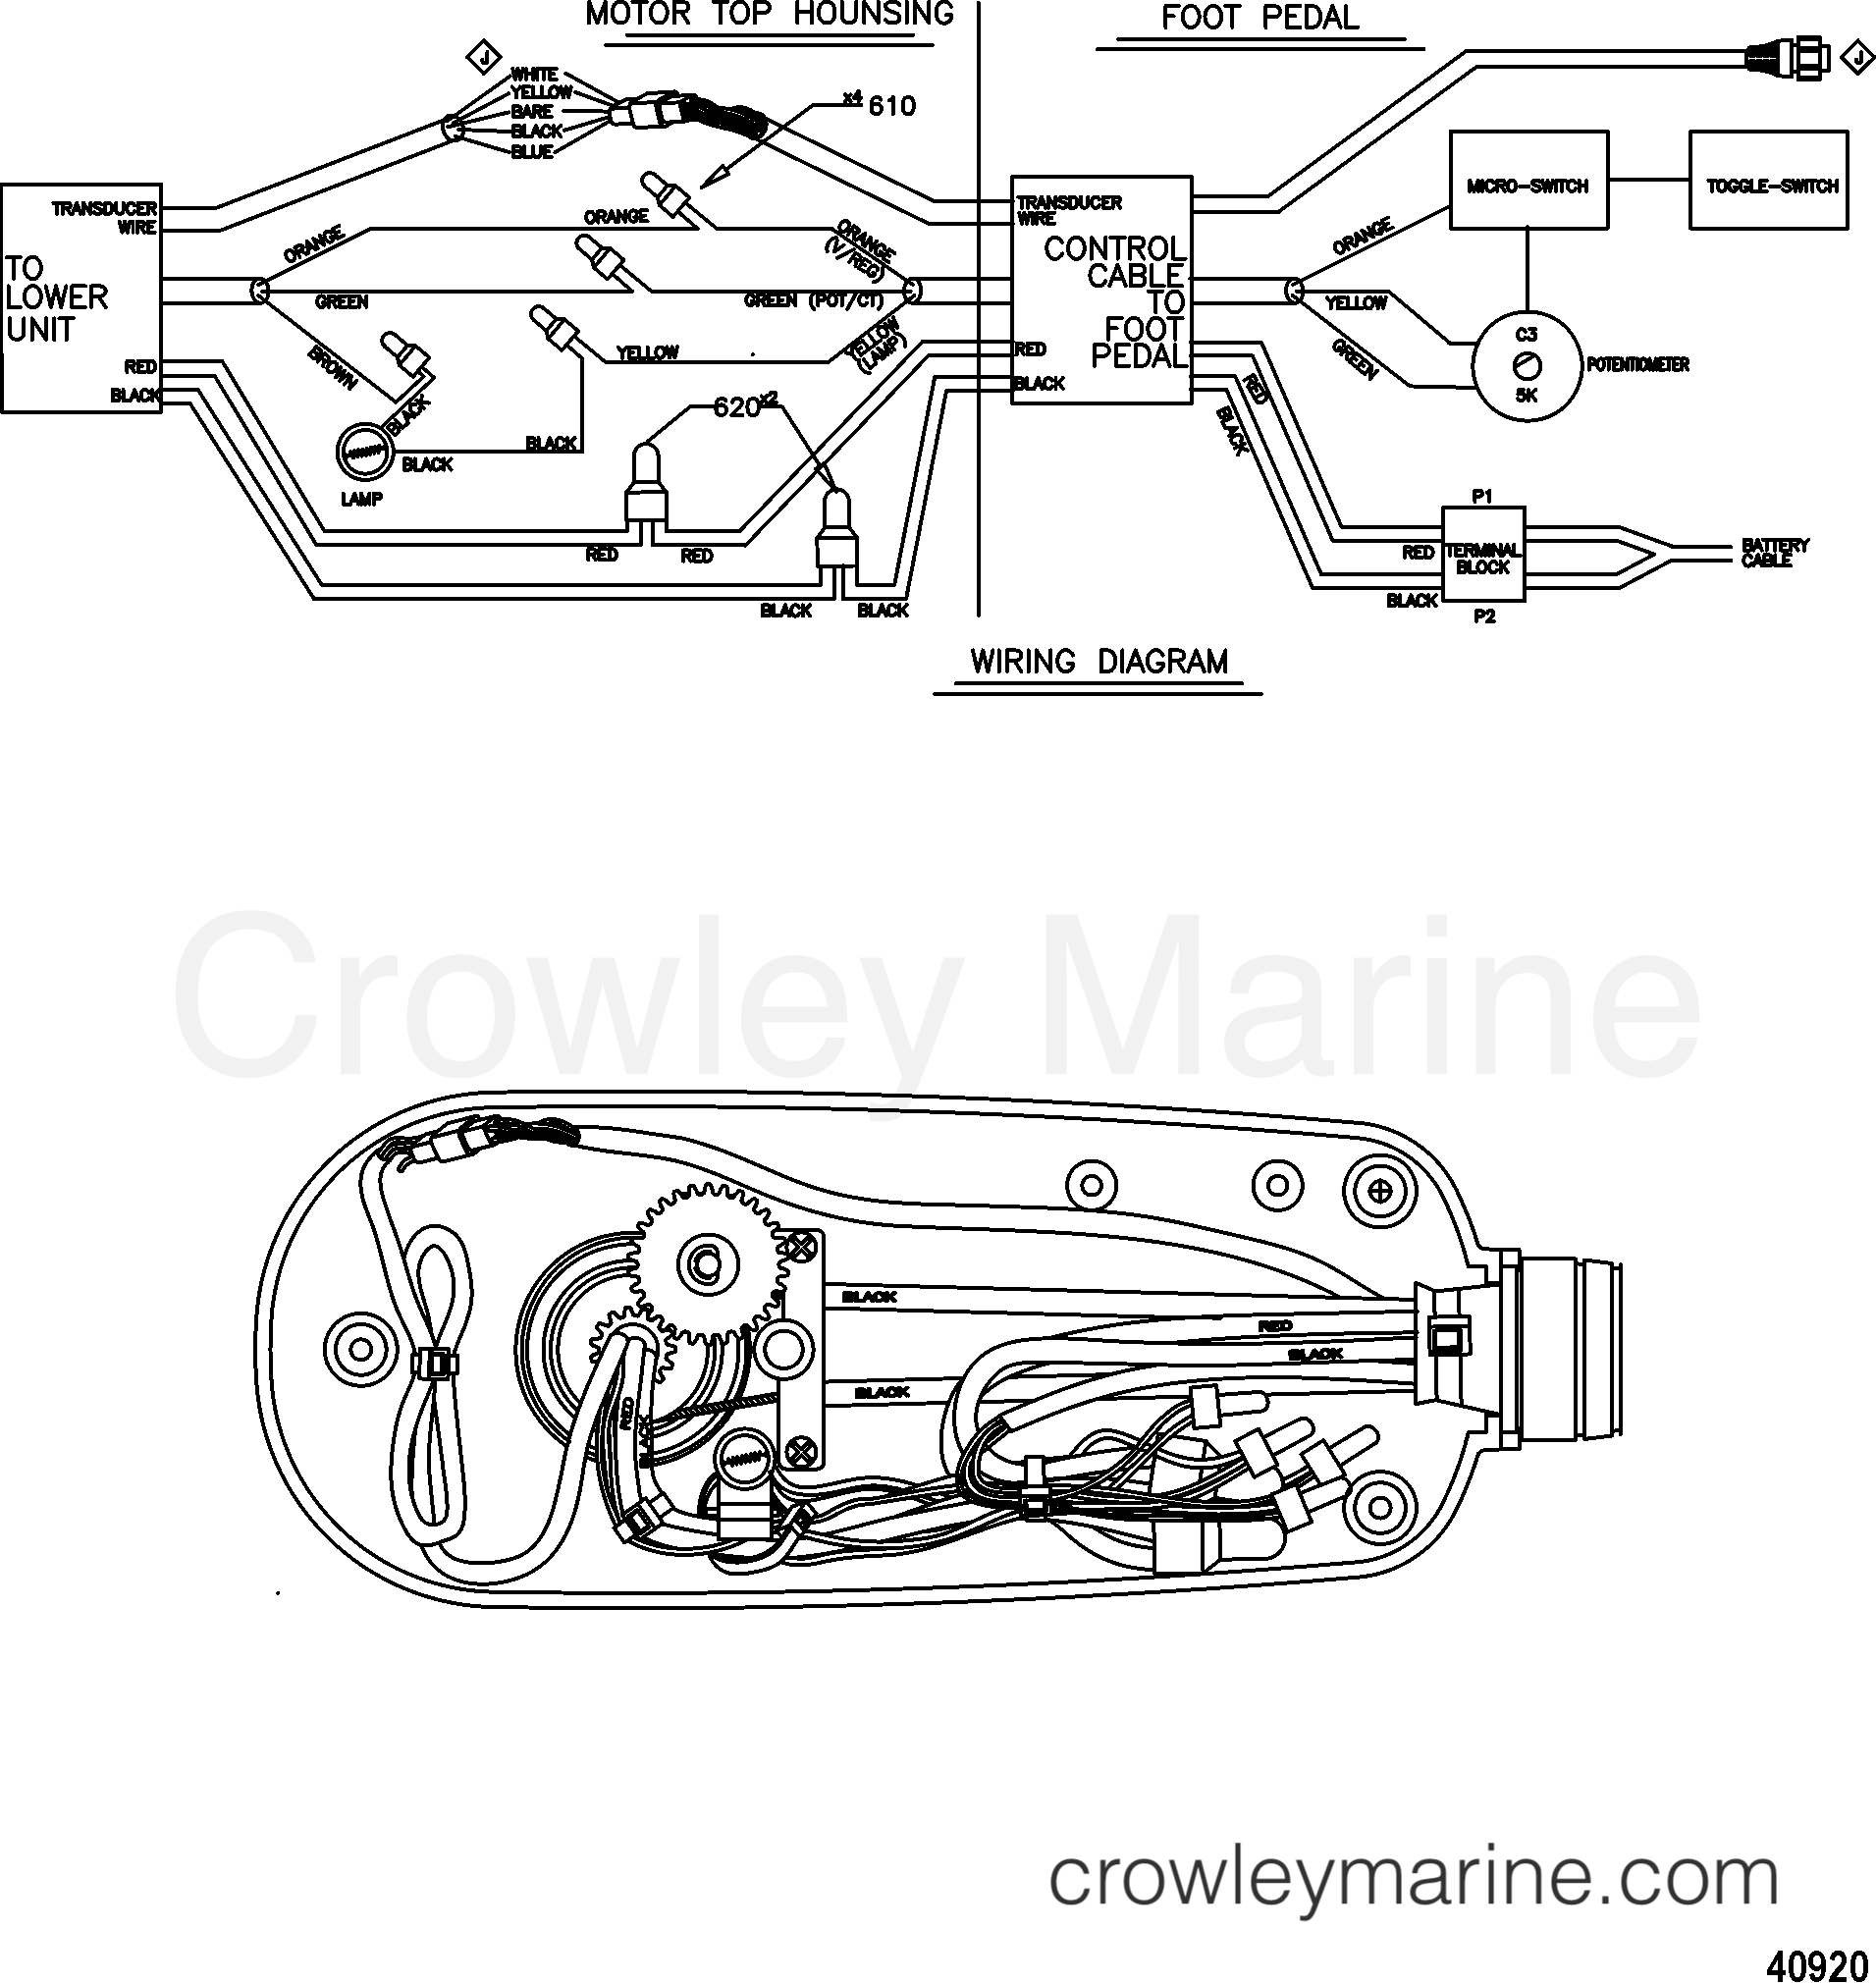 m7C56MvY wire diagram(tr109lfbd) (36 volt) 2008 motorguide 24v 930011010 motorguide foot pedal wiring diagram at mifinder.co